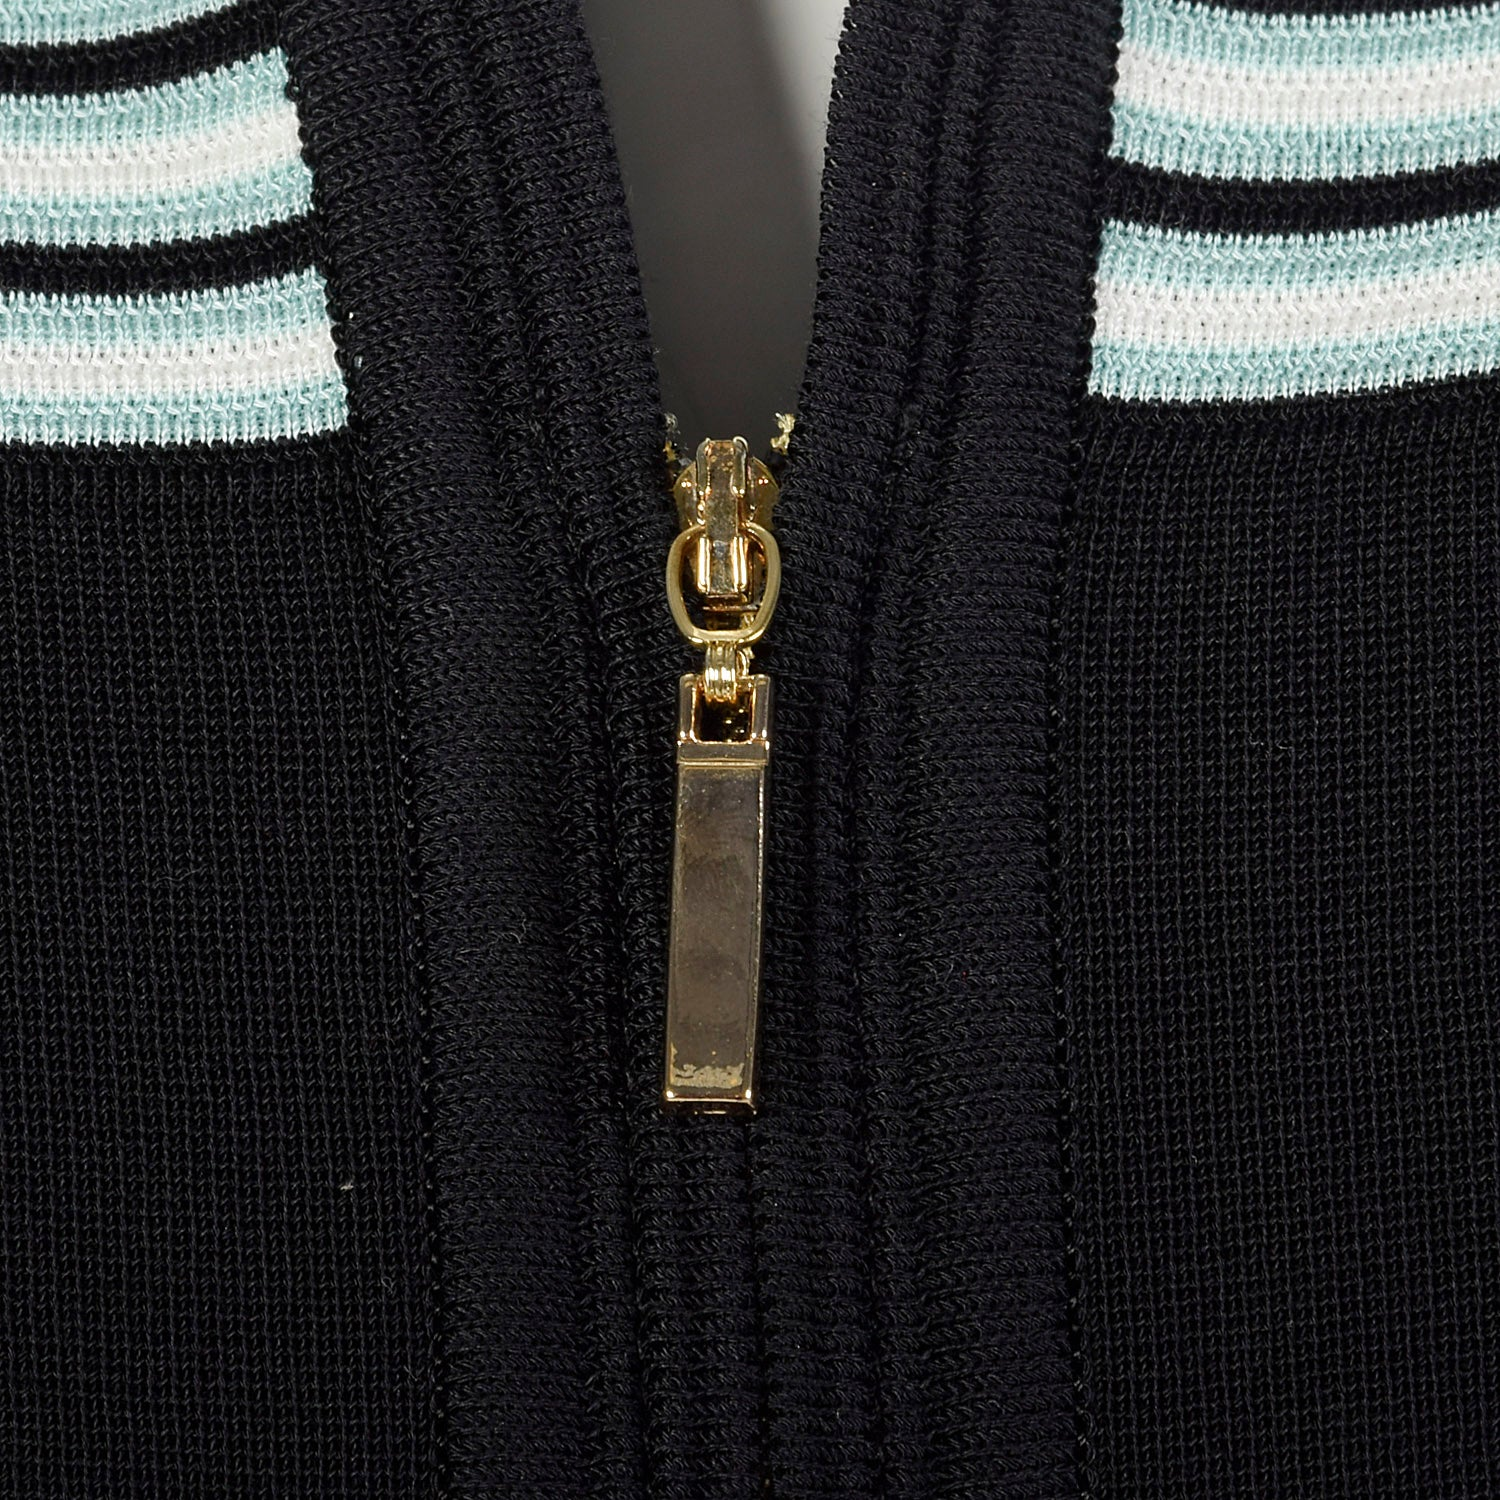 2000s Misook Black and Blue Striped Knit Shirt